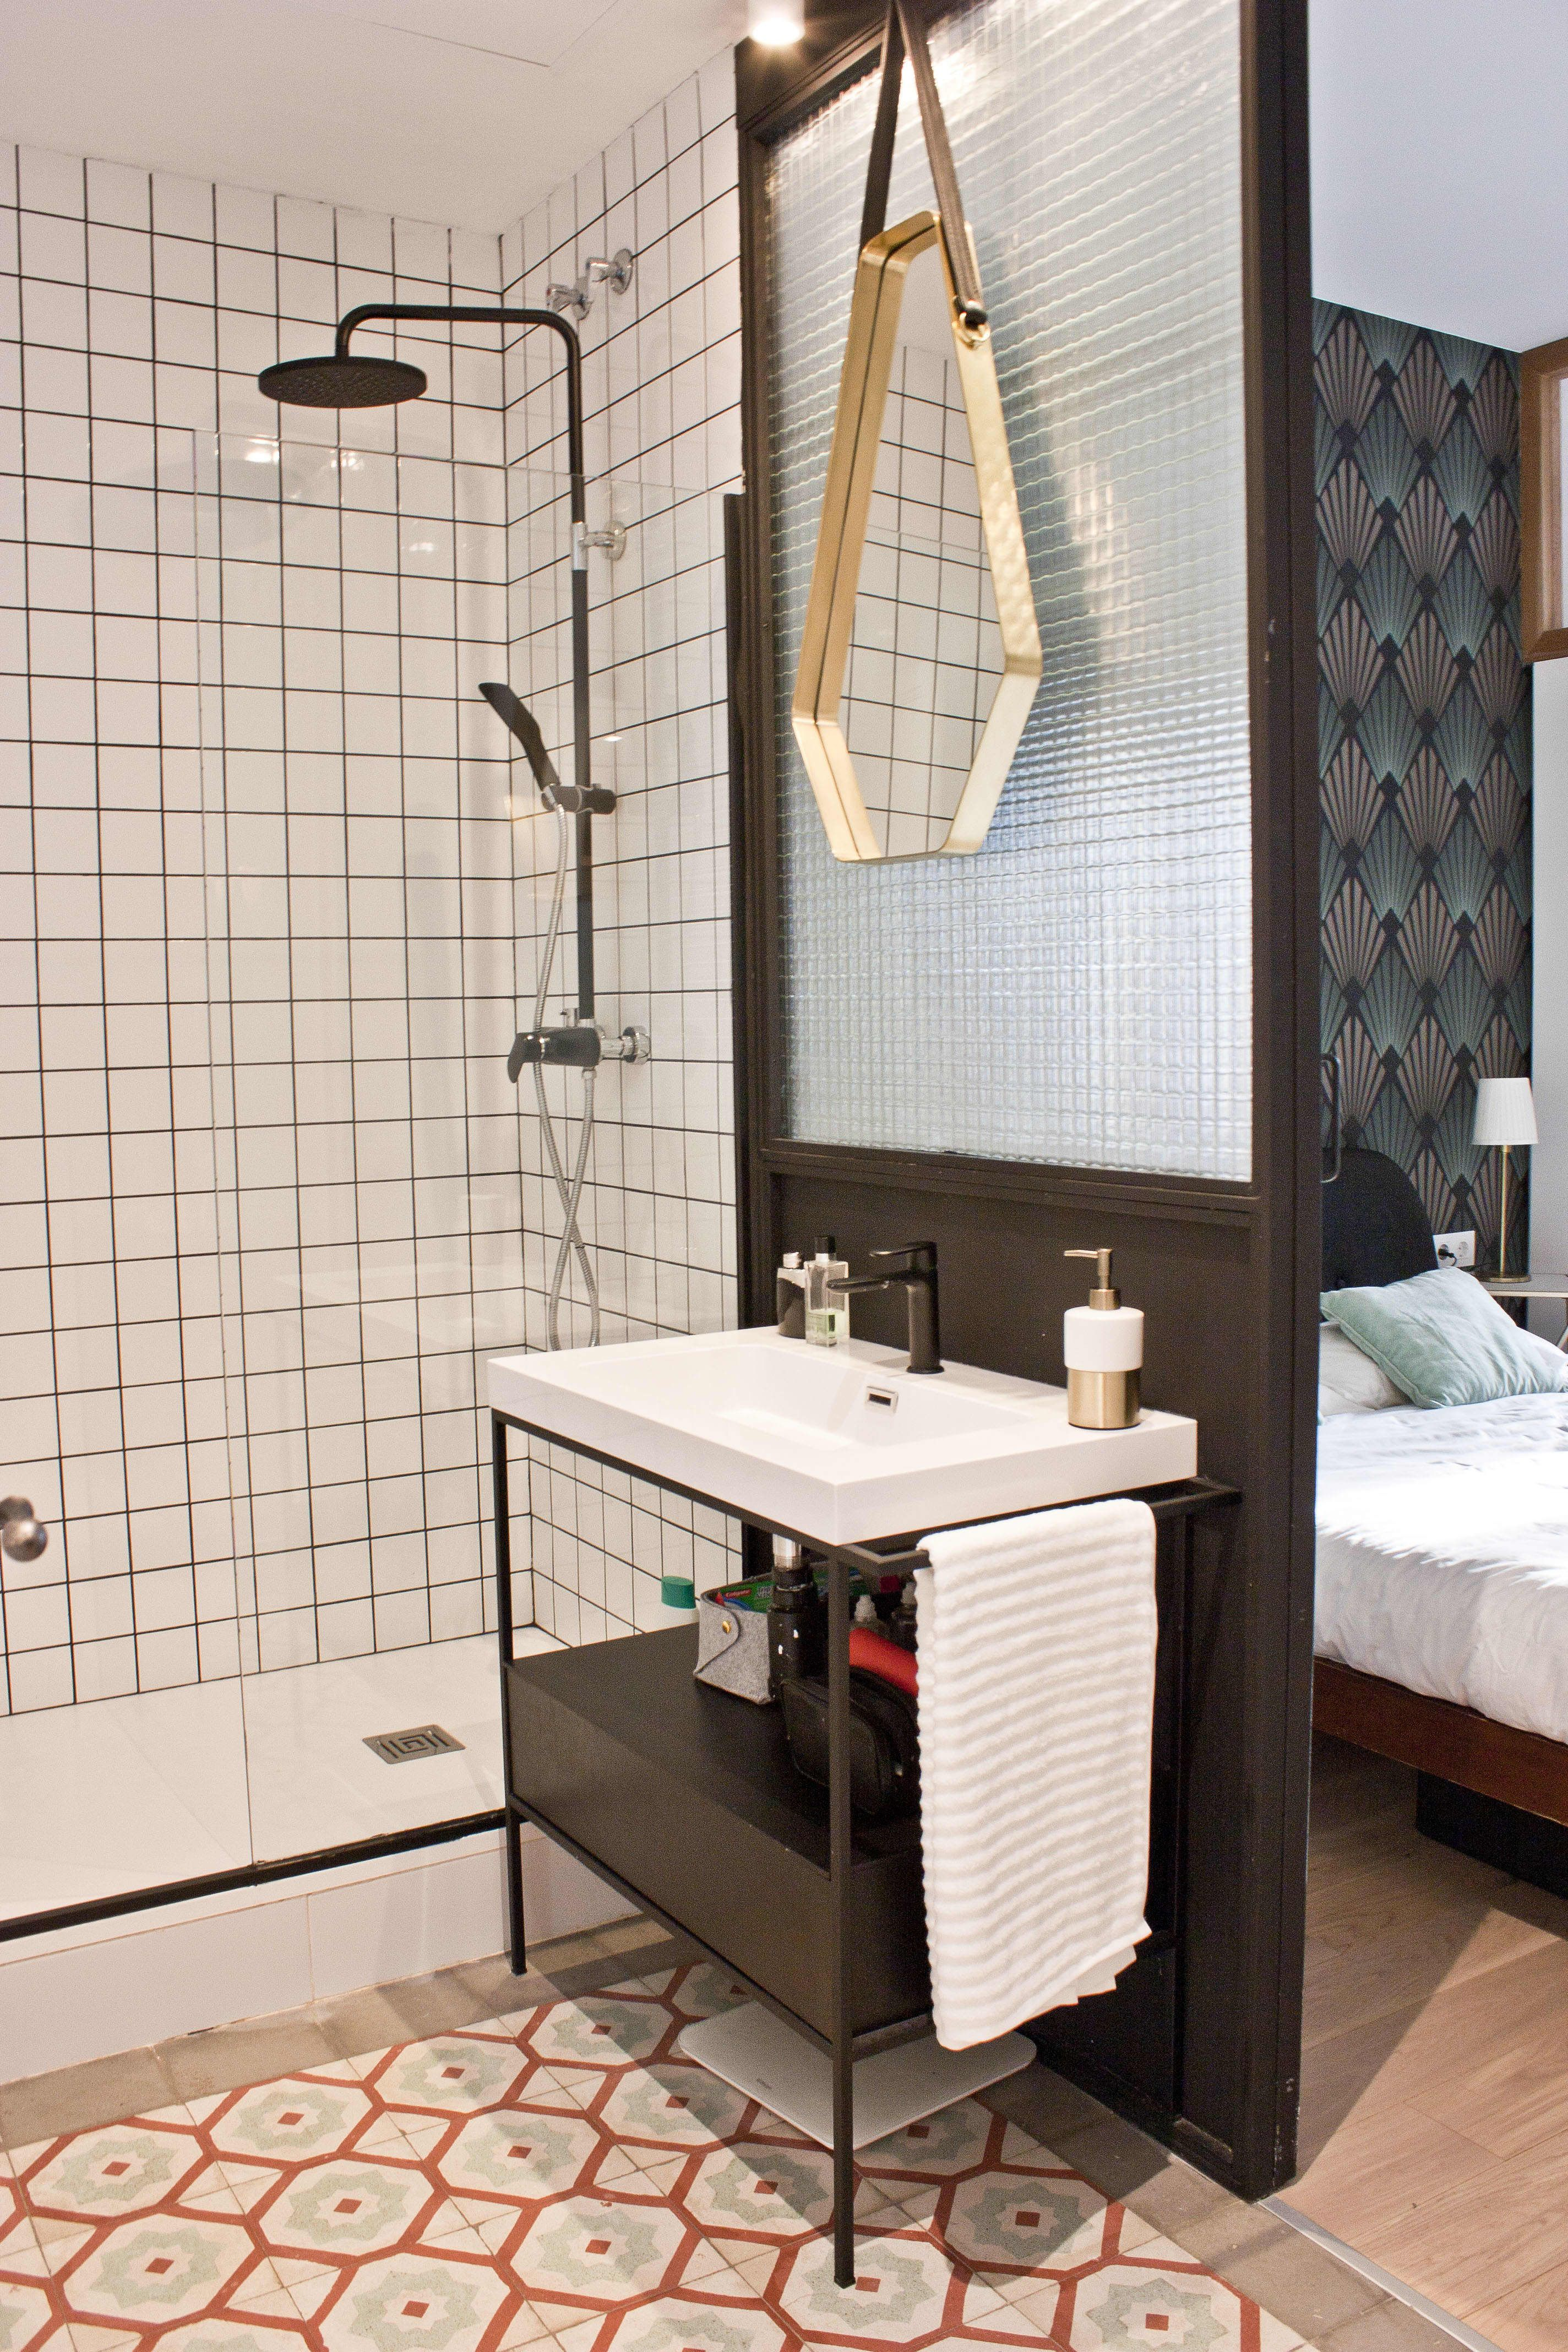 This Home S Reading Nook Transforms Into A Guest Room In Less Than A Minute With Images Add A Bathroom Expensive Houses Home Improvement